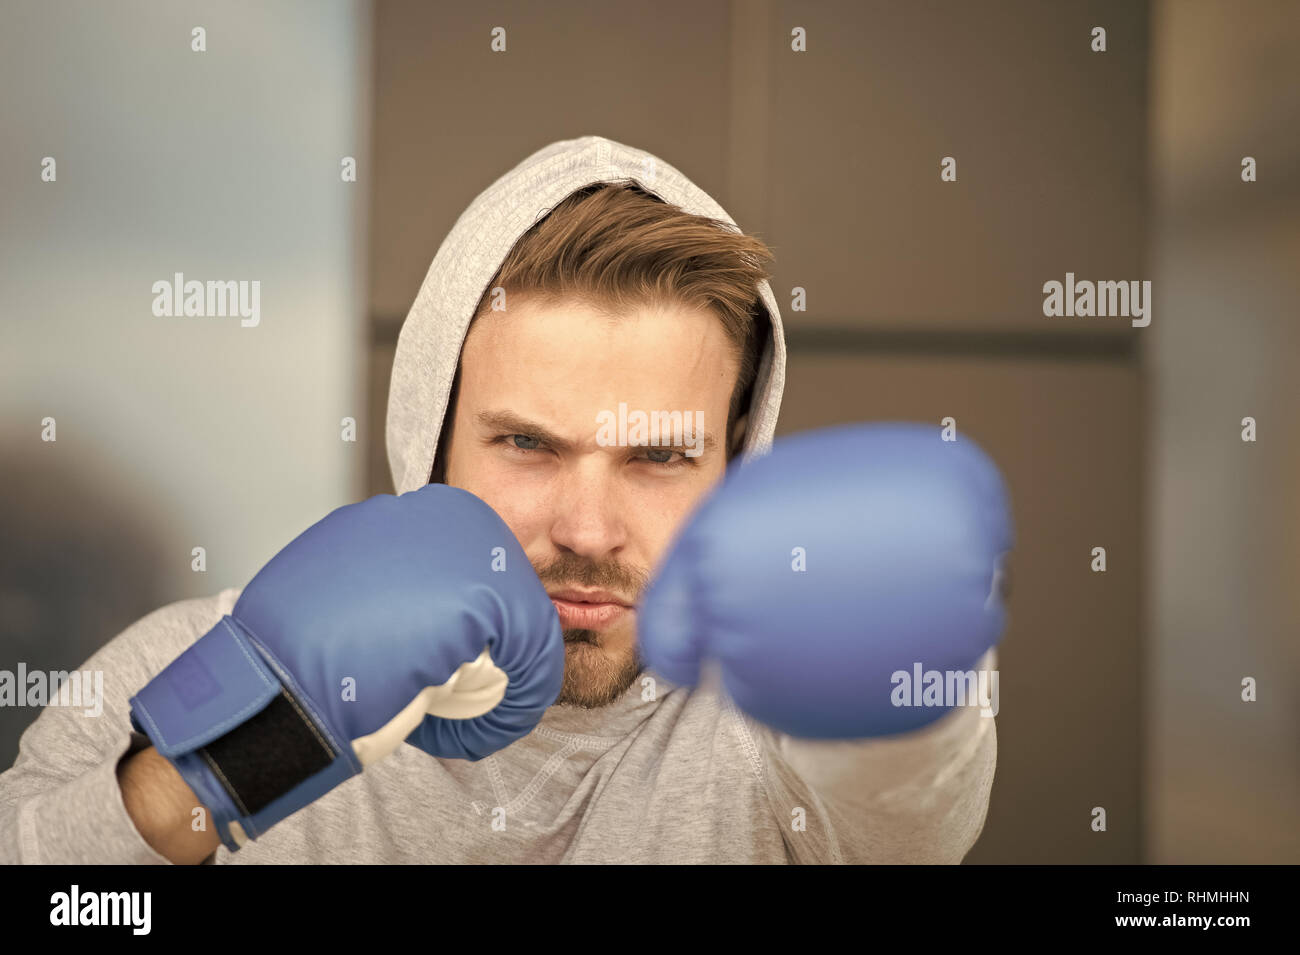 Boxing concept. Man athlete on concentrated face with sport gloves practicing boxing punch, urban background. Boxer with hood on head practices jab punch. Sportsman boxer training with boxing gloves. - Stock Image